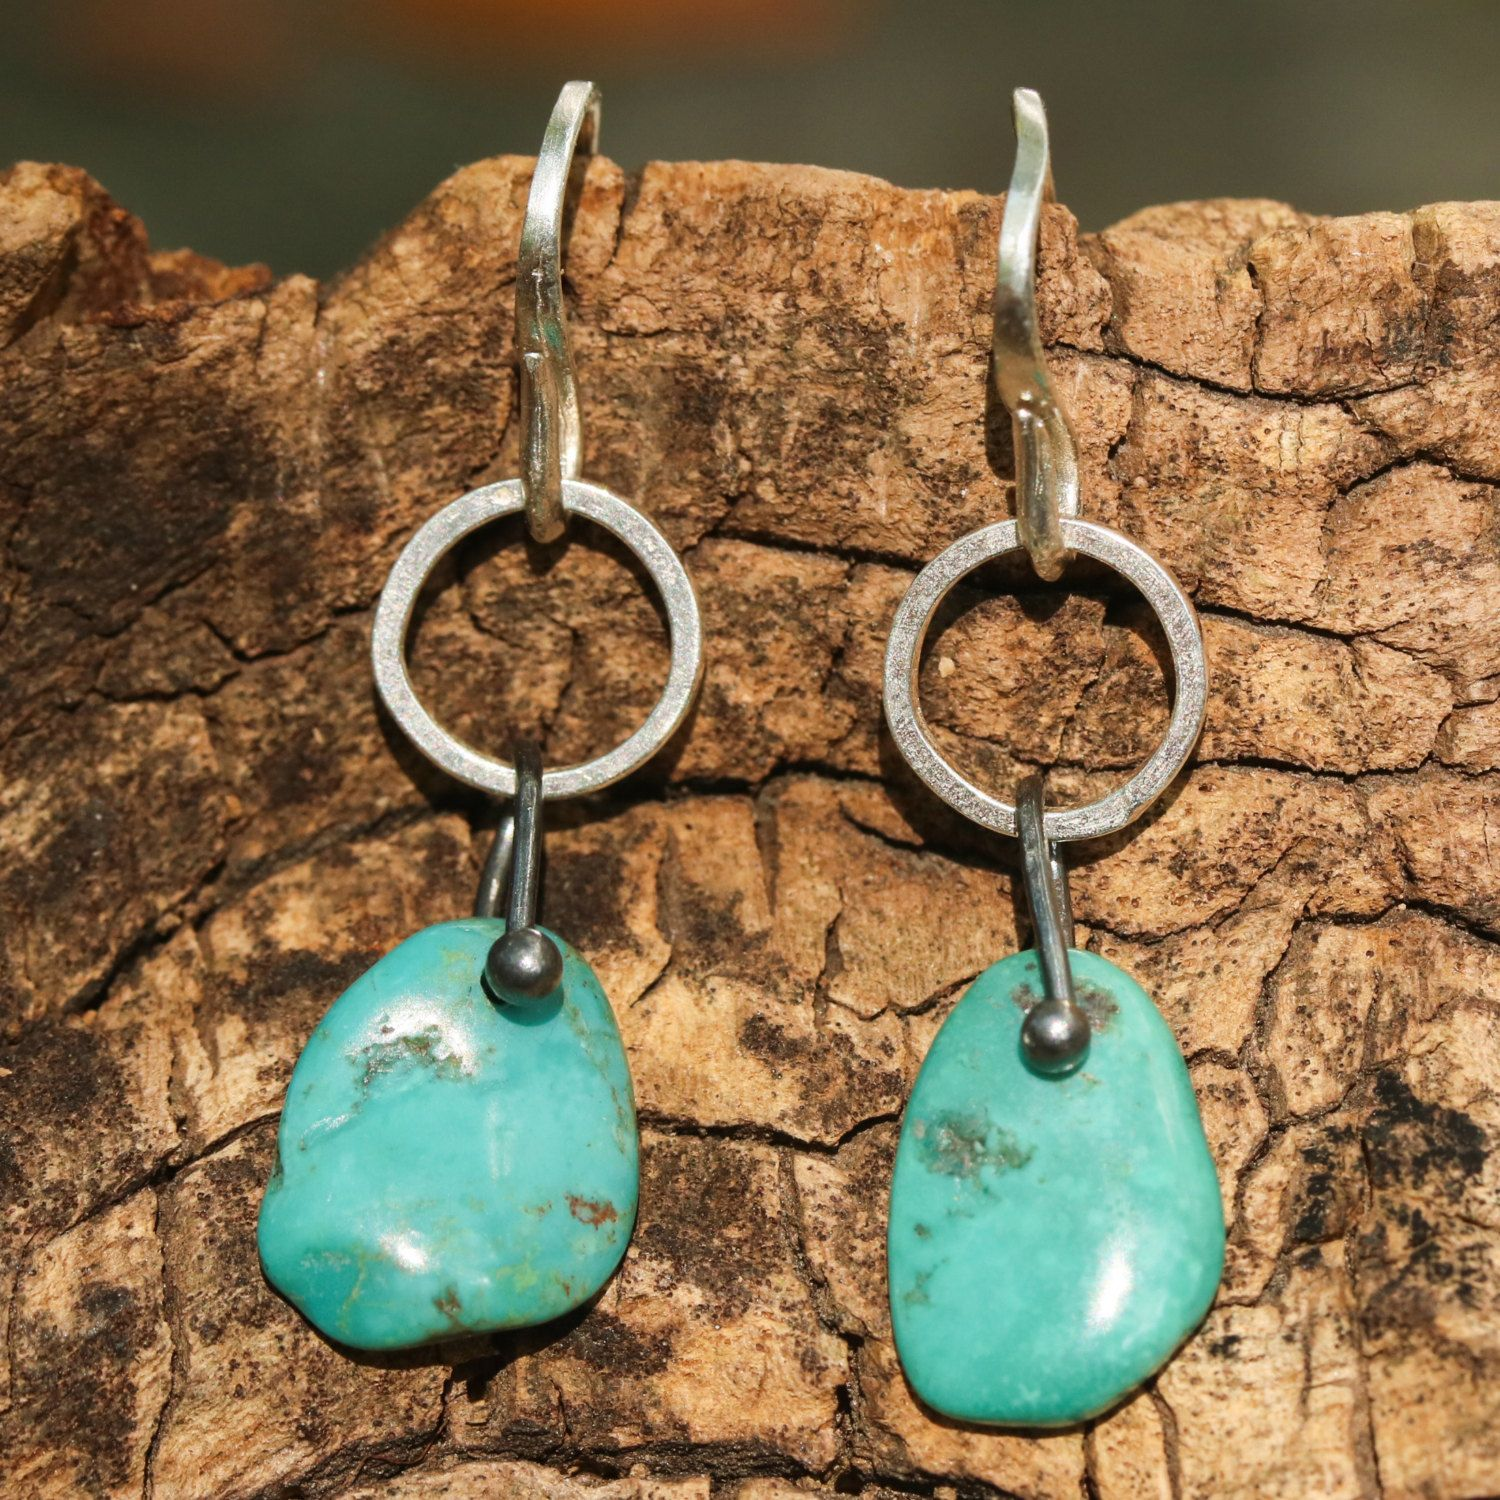 Blue turquoise earrings in freeform with silver matte finished loops and sterling silver hooks on the top